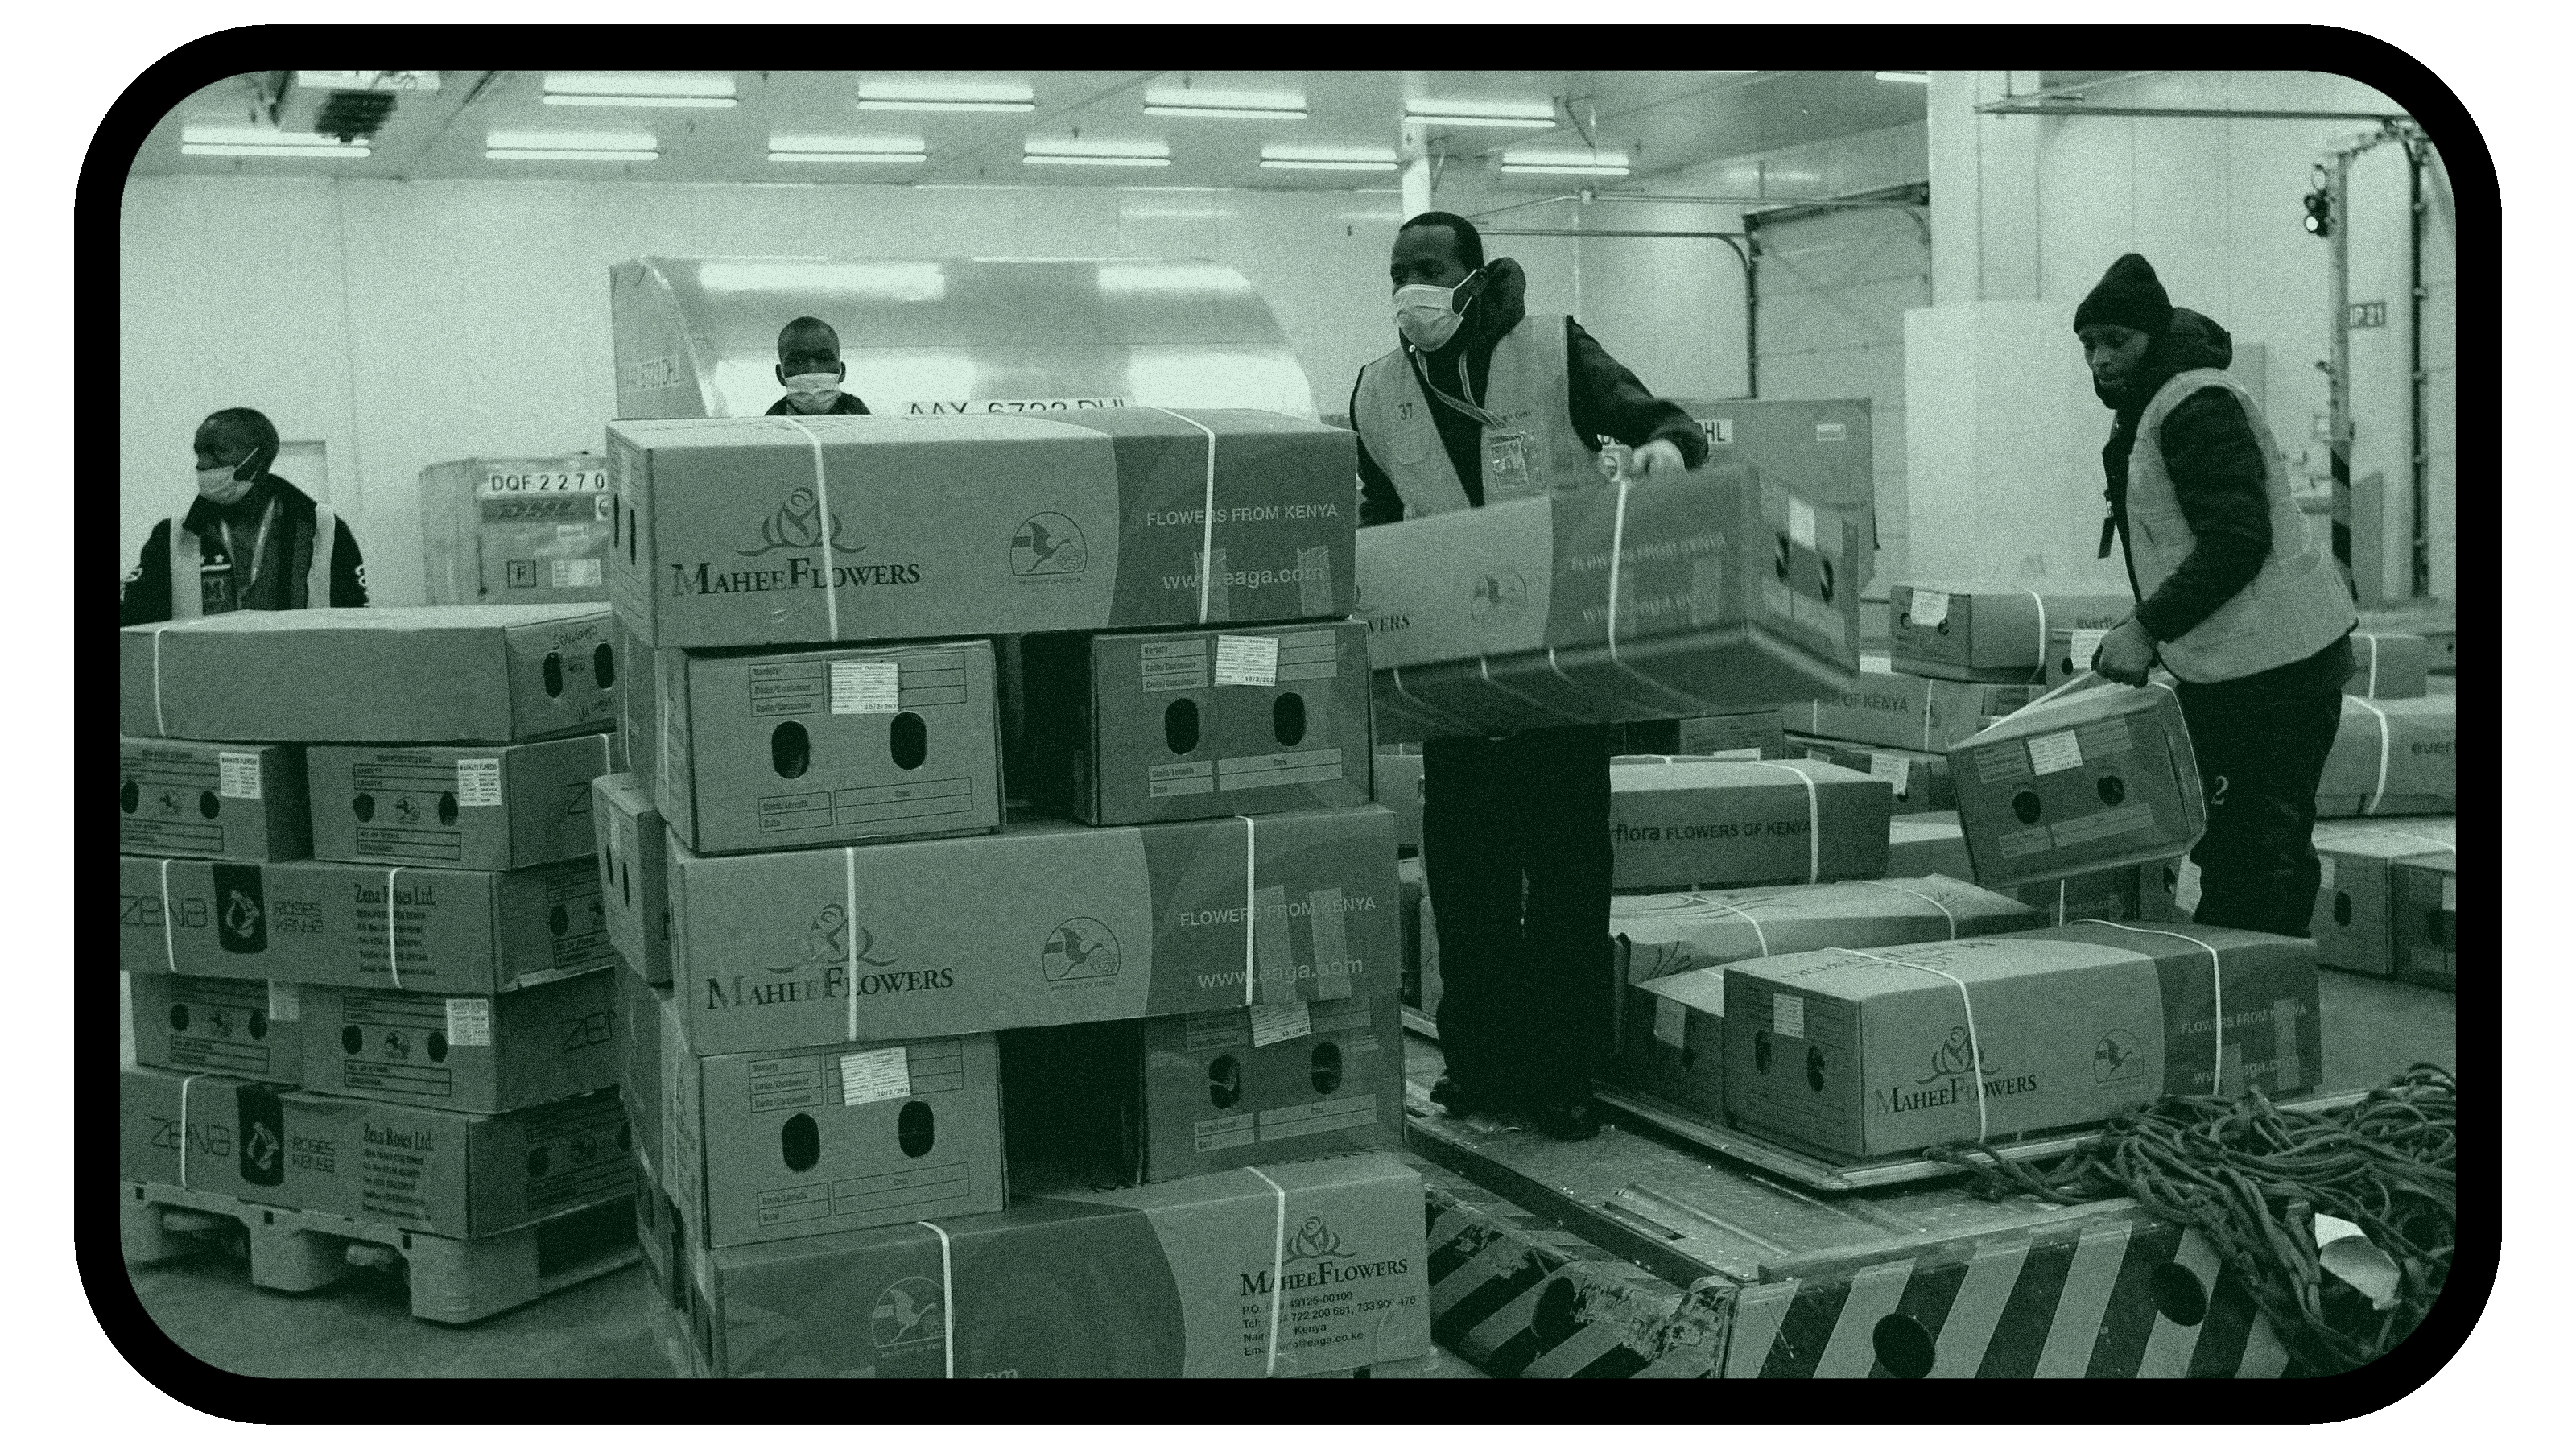 A picture of workers in a warehouse loading cartons of goods on a machine